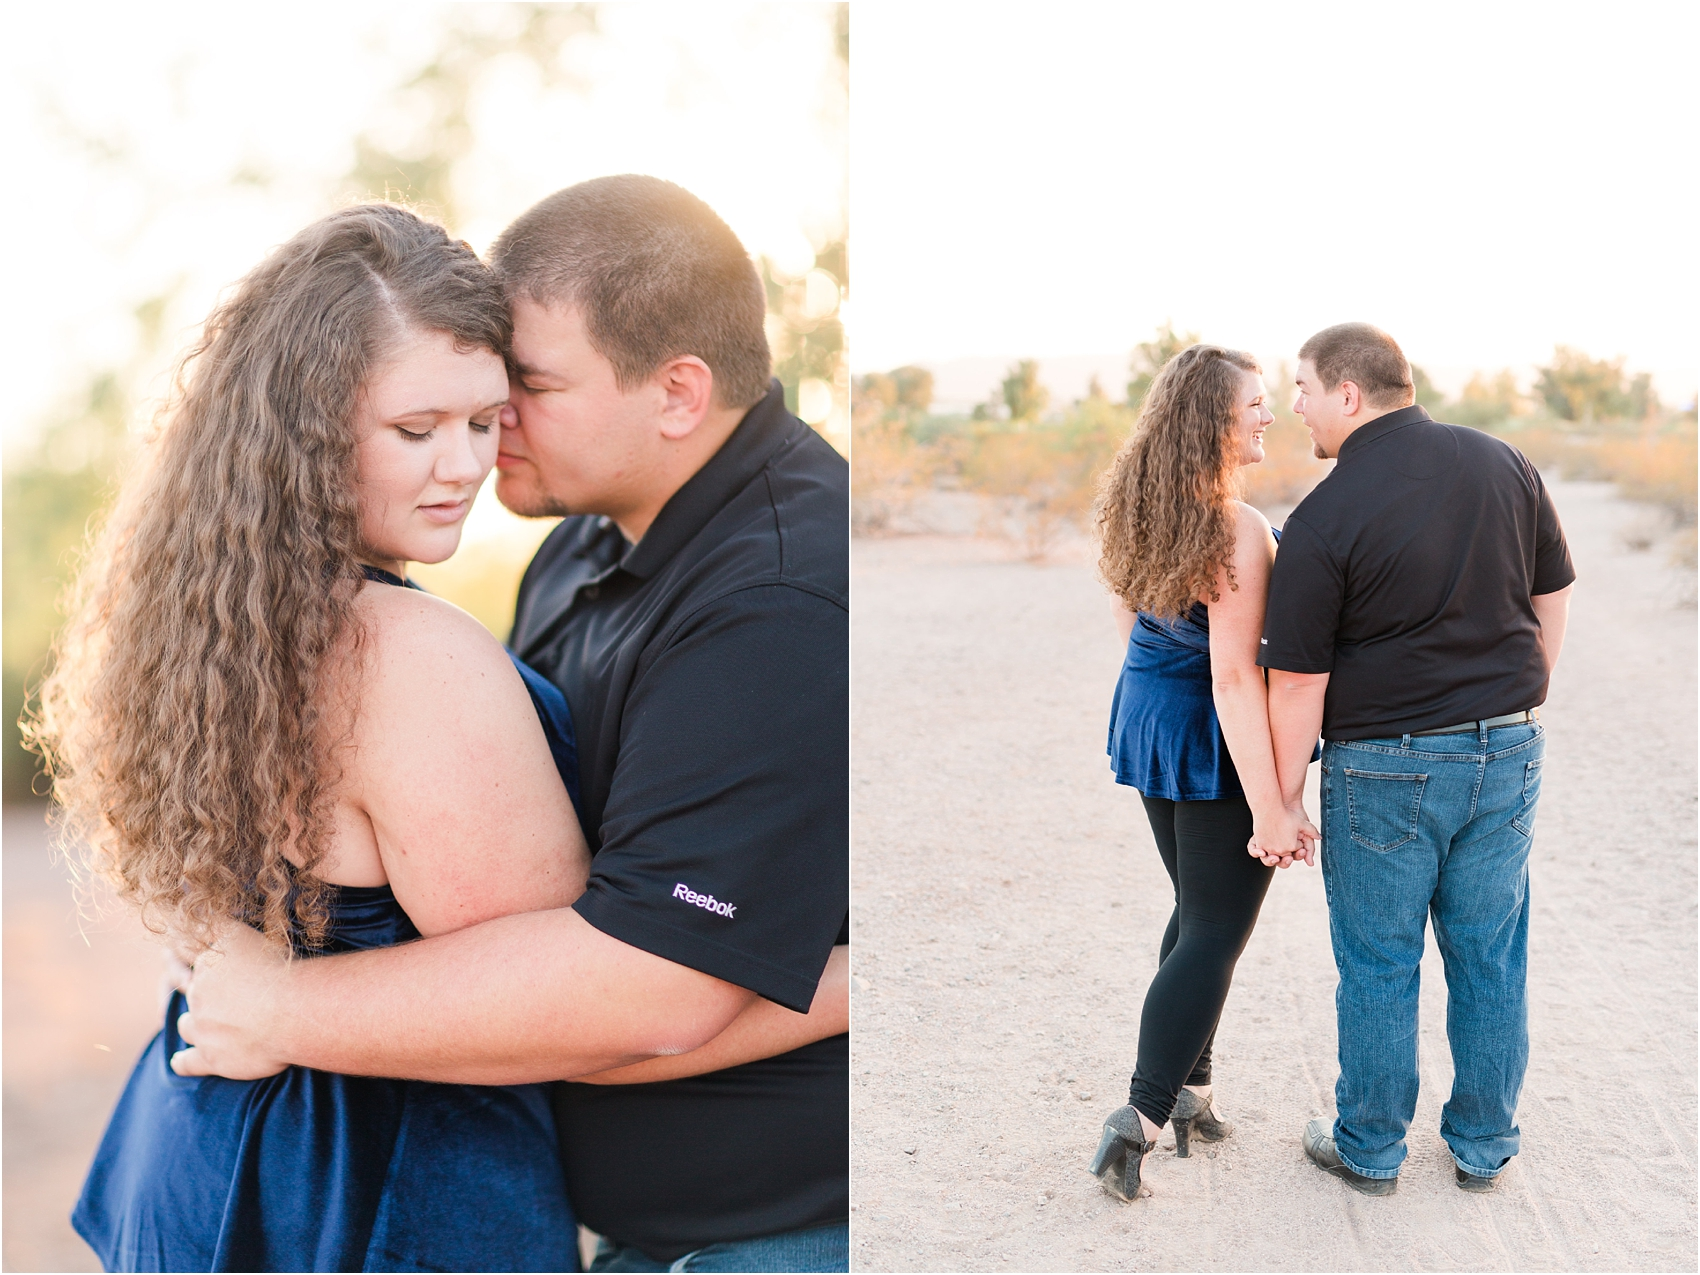 romantic-desert-engagement-photos-in-scottsdale-arizona-courtney-carolyn-photography-by-katelyn-james_0028.jpg